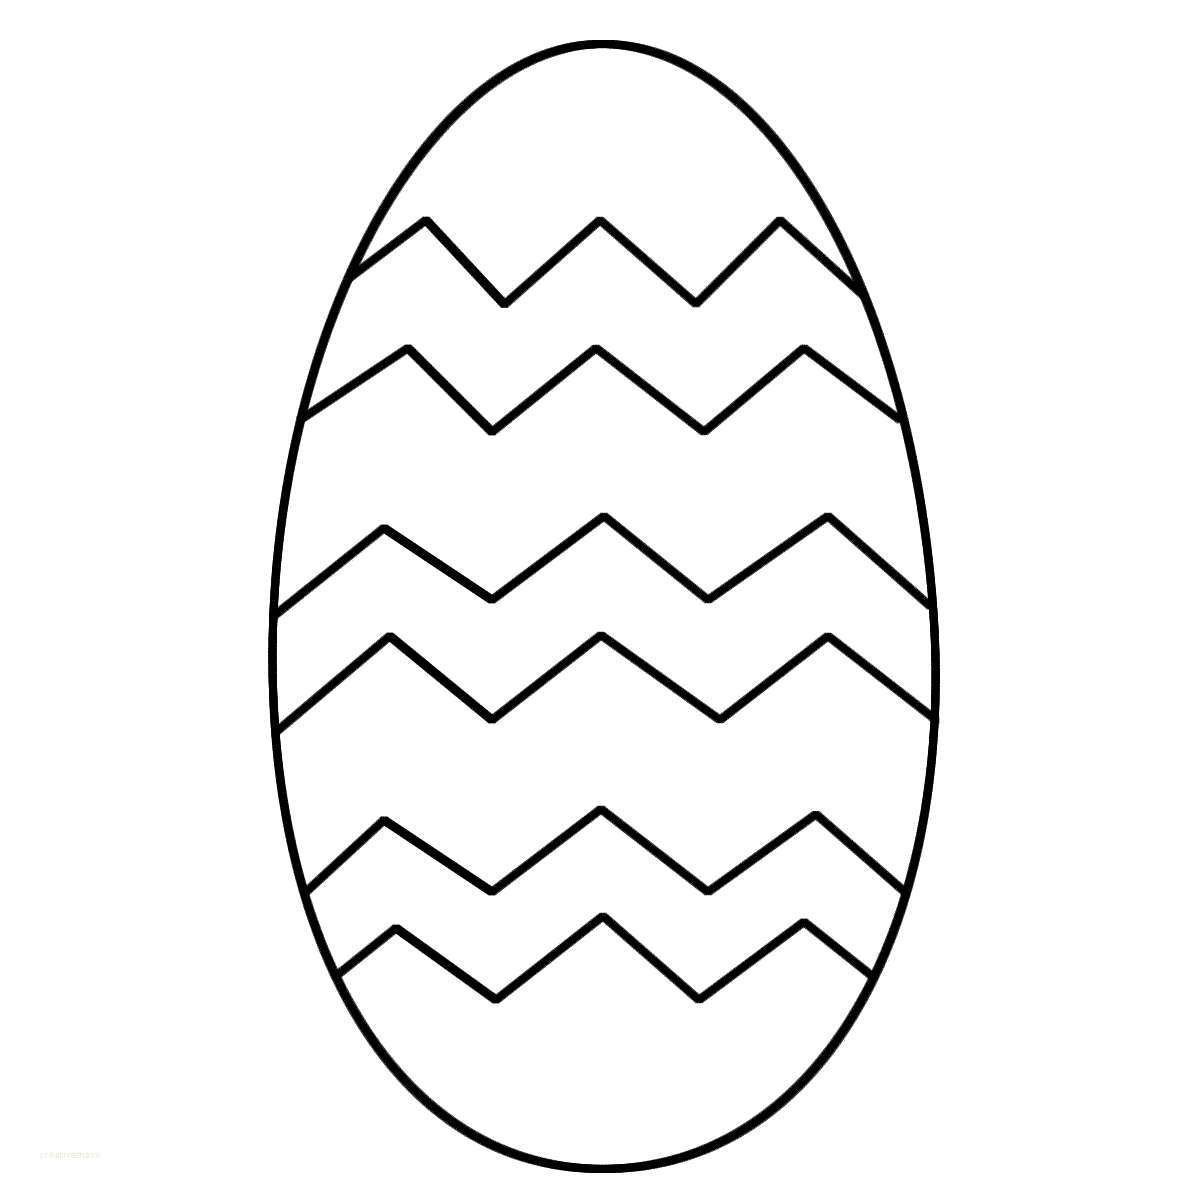 Easter egg black and white clipart banner library library Best Of Outdoor Easter Table Decorations | Documents | Easter egg ... banner library library